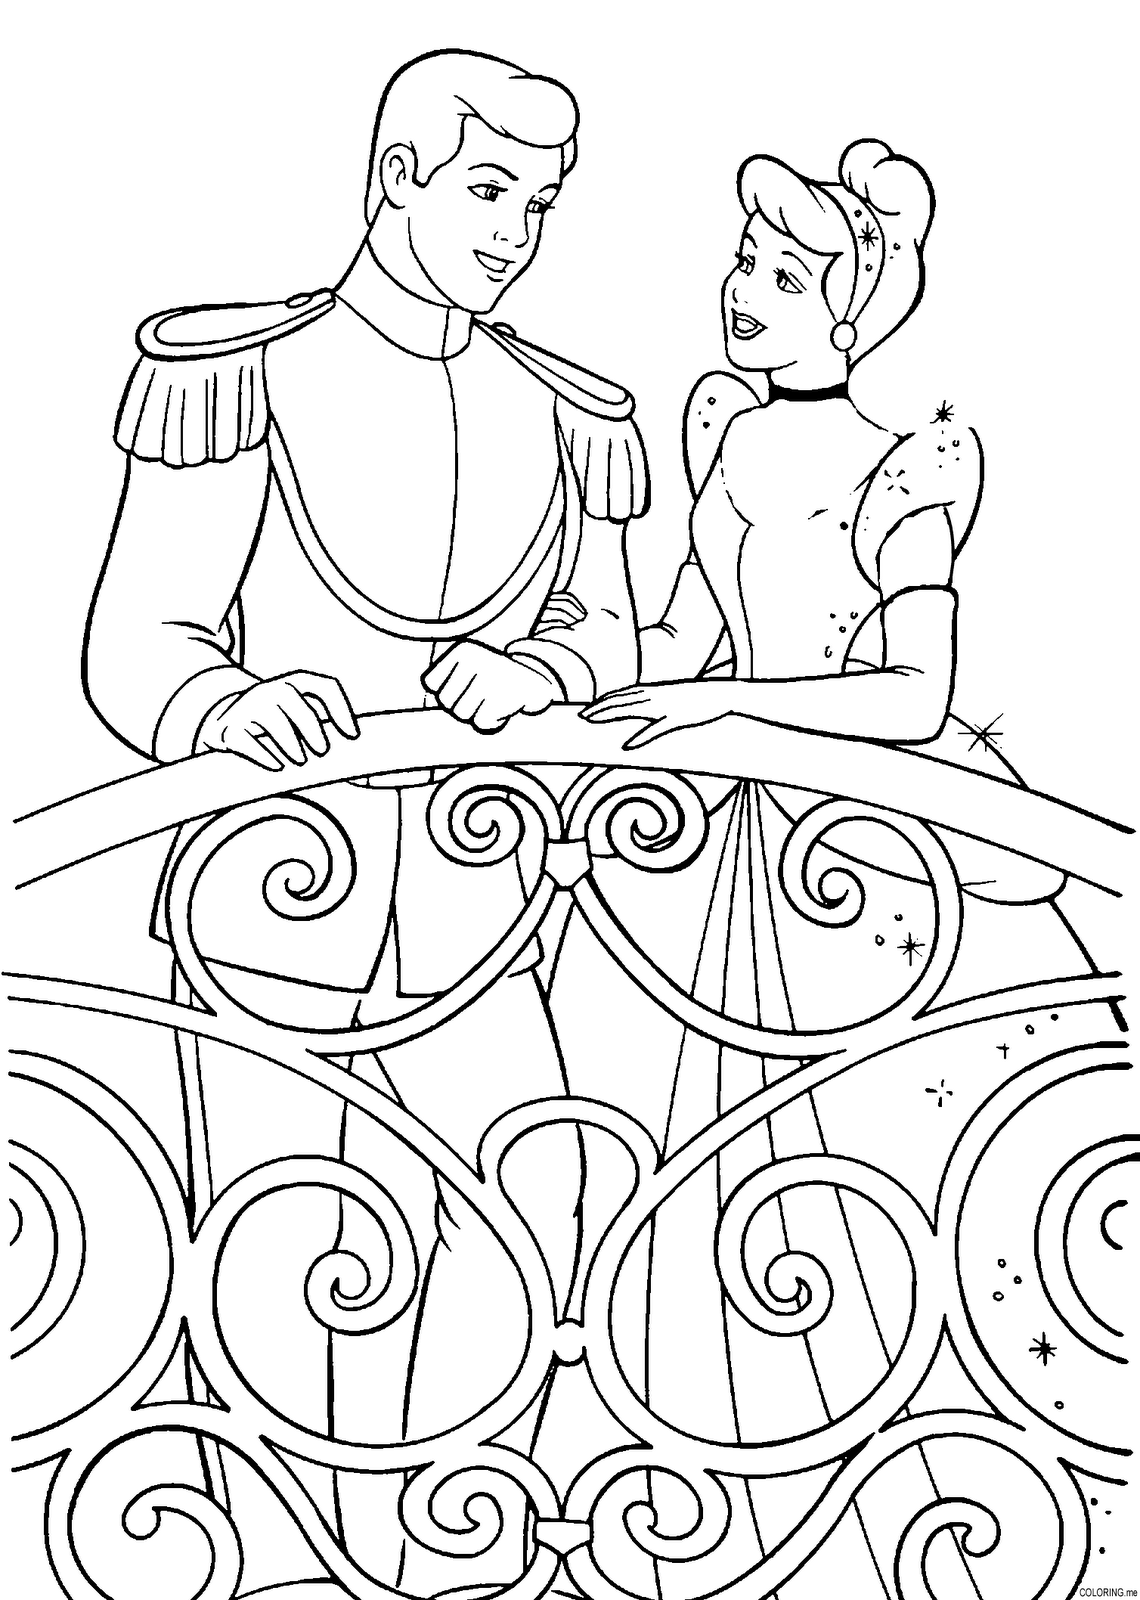 Kids Coloring Pages | Kids Online World Blog